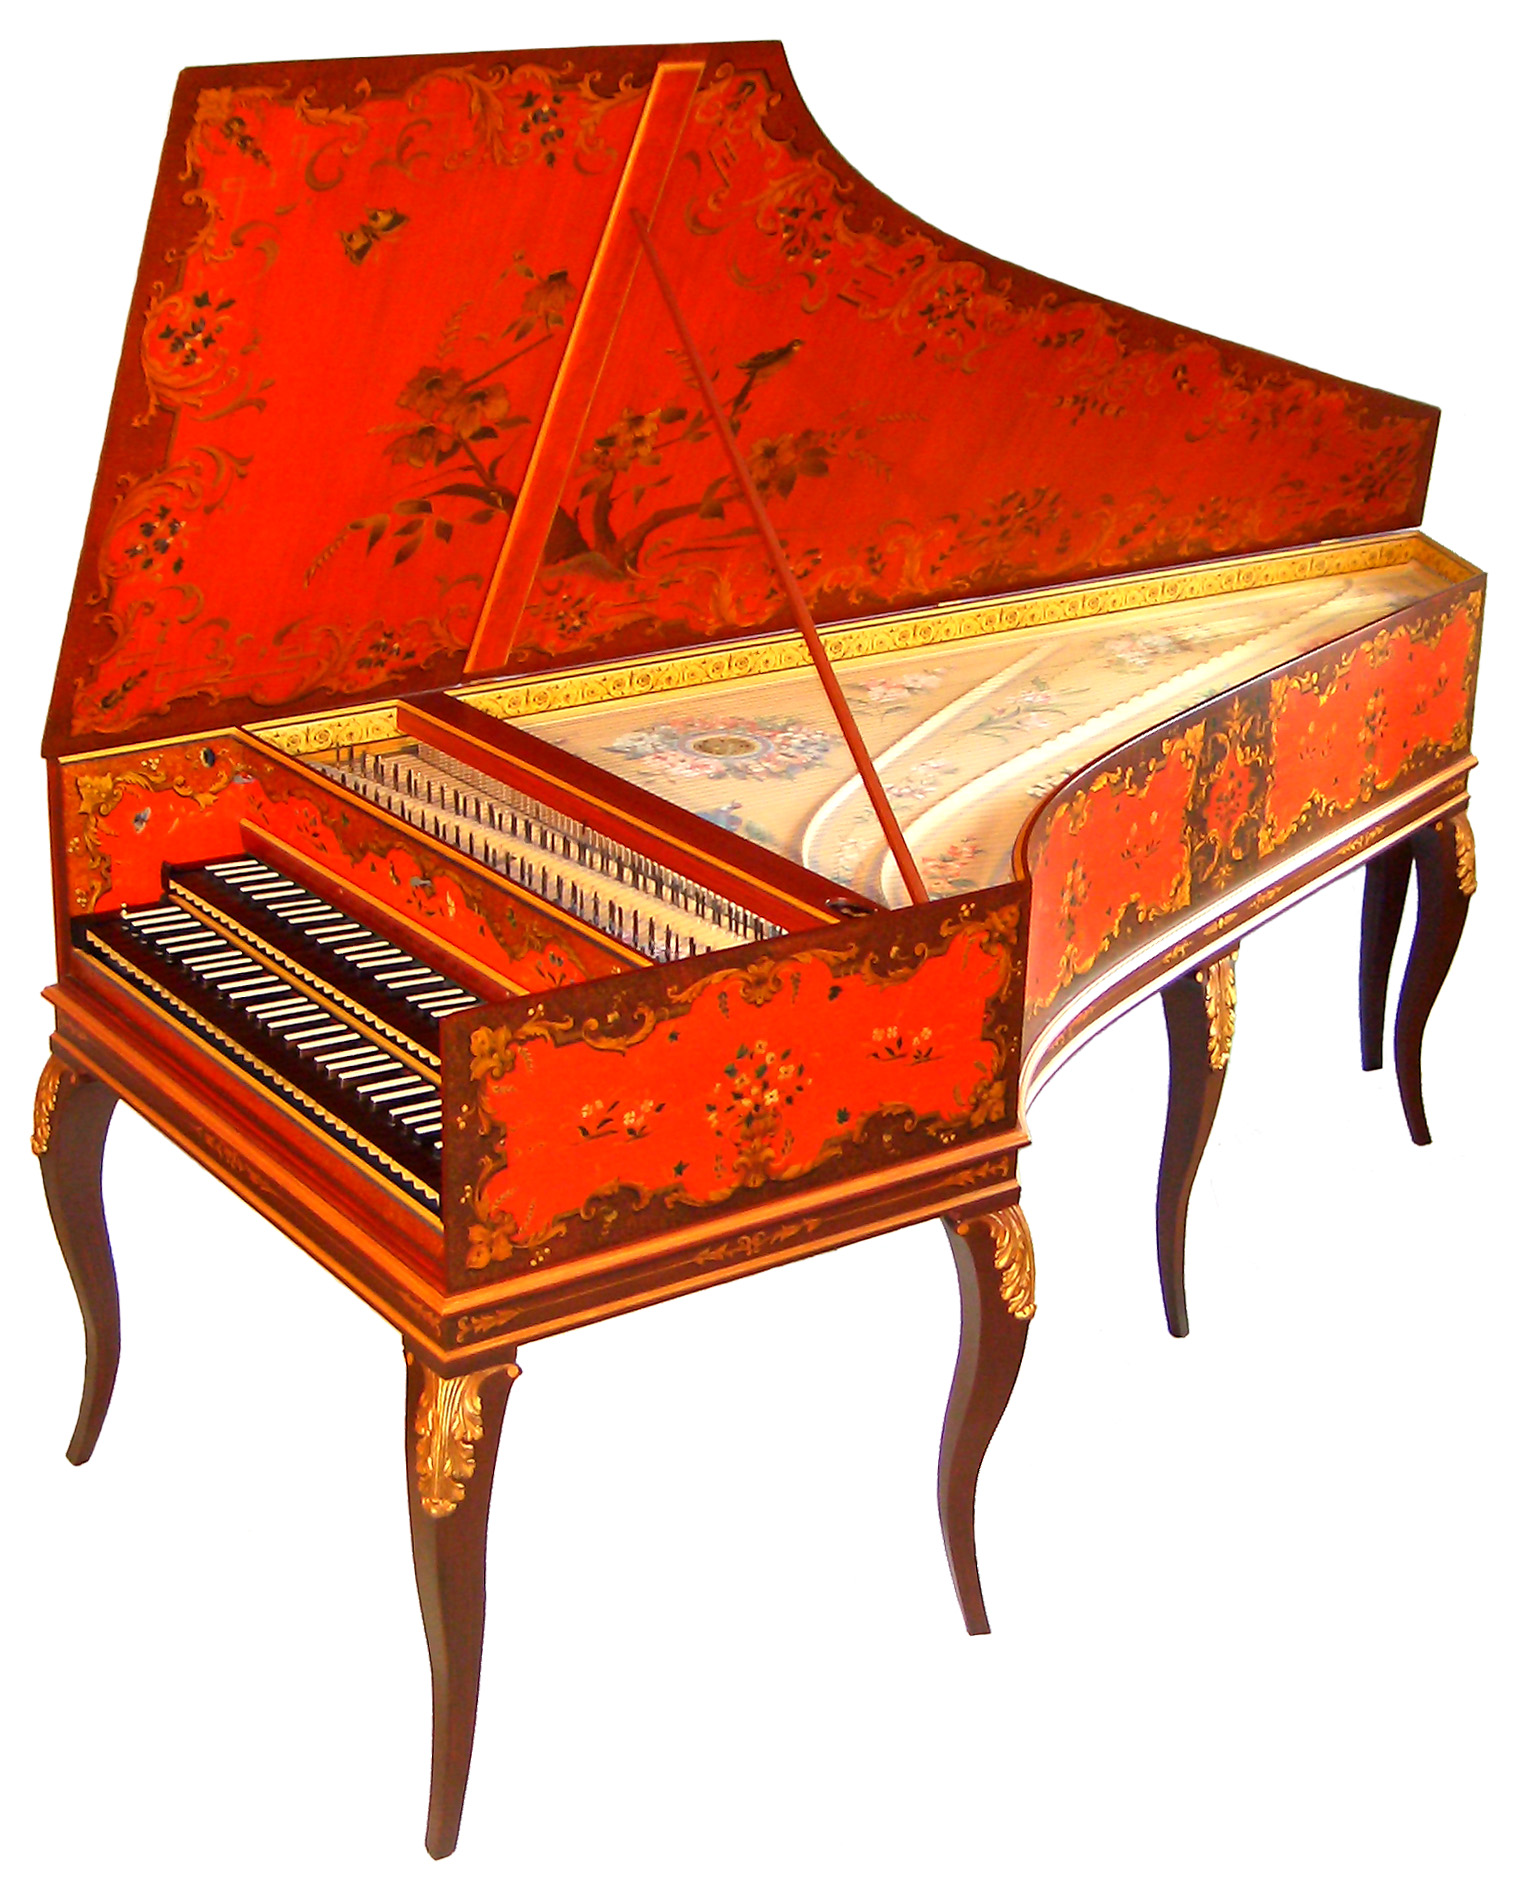 File harpsichord wikipedia for Table wikipedia